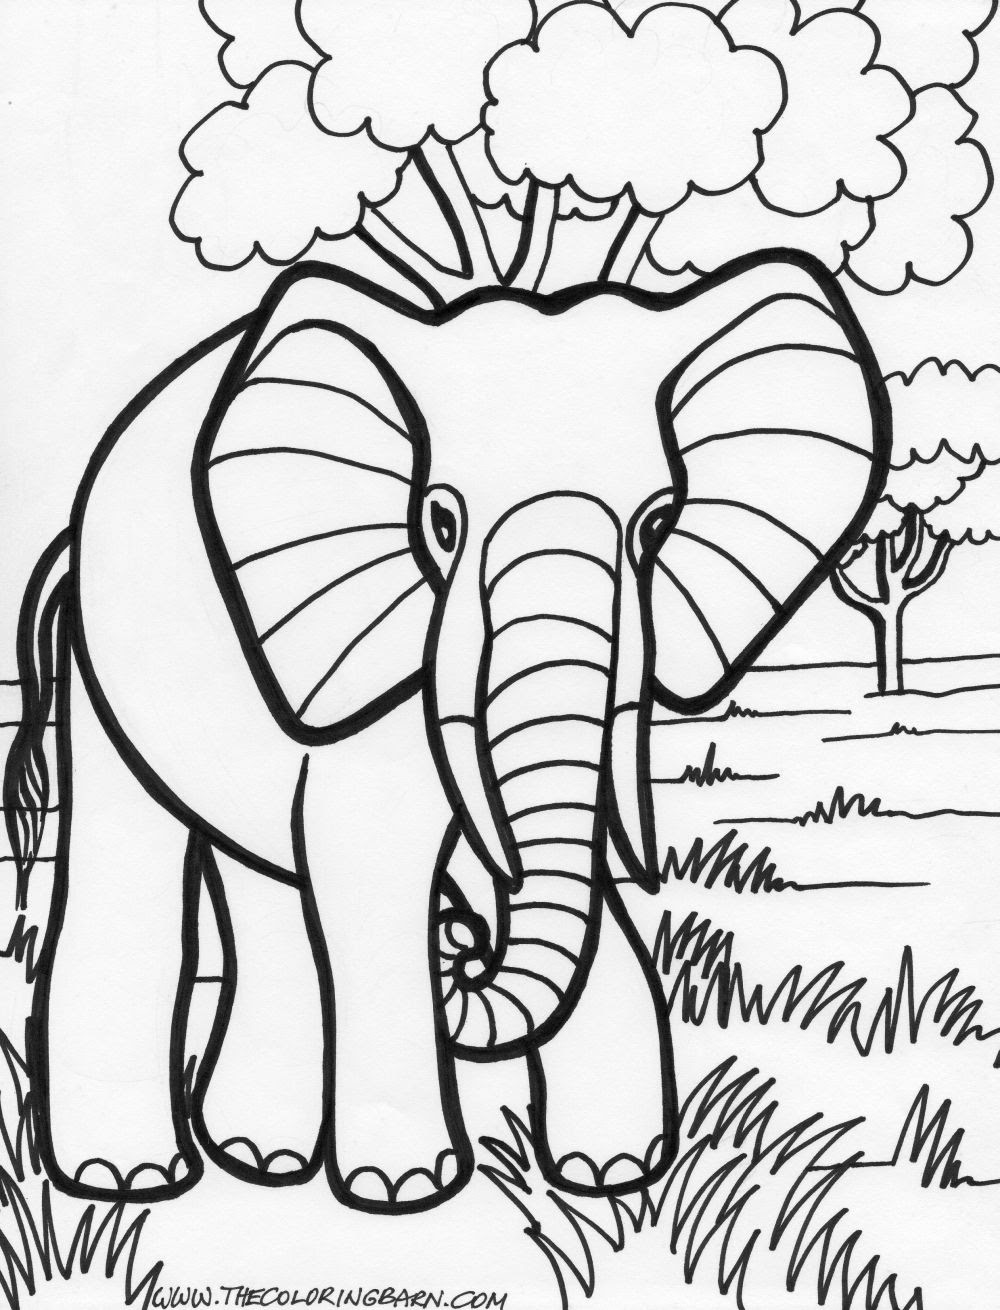 Elephant Abstract Doodle Zentangle Paisley Coloring pages ... | 1310x1000